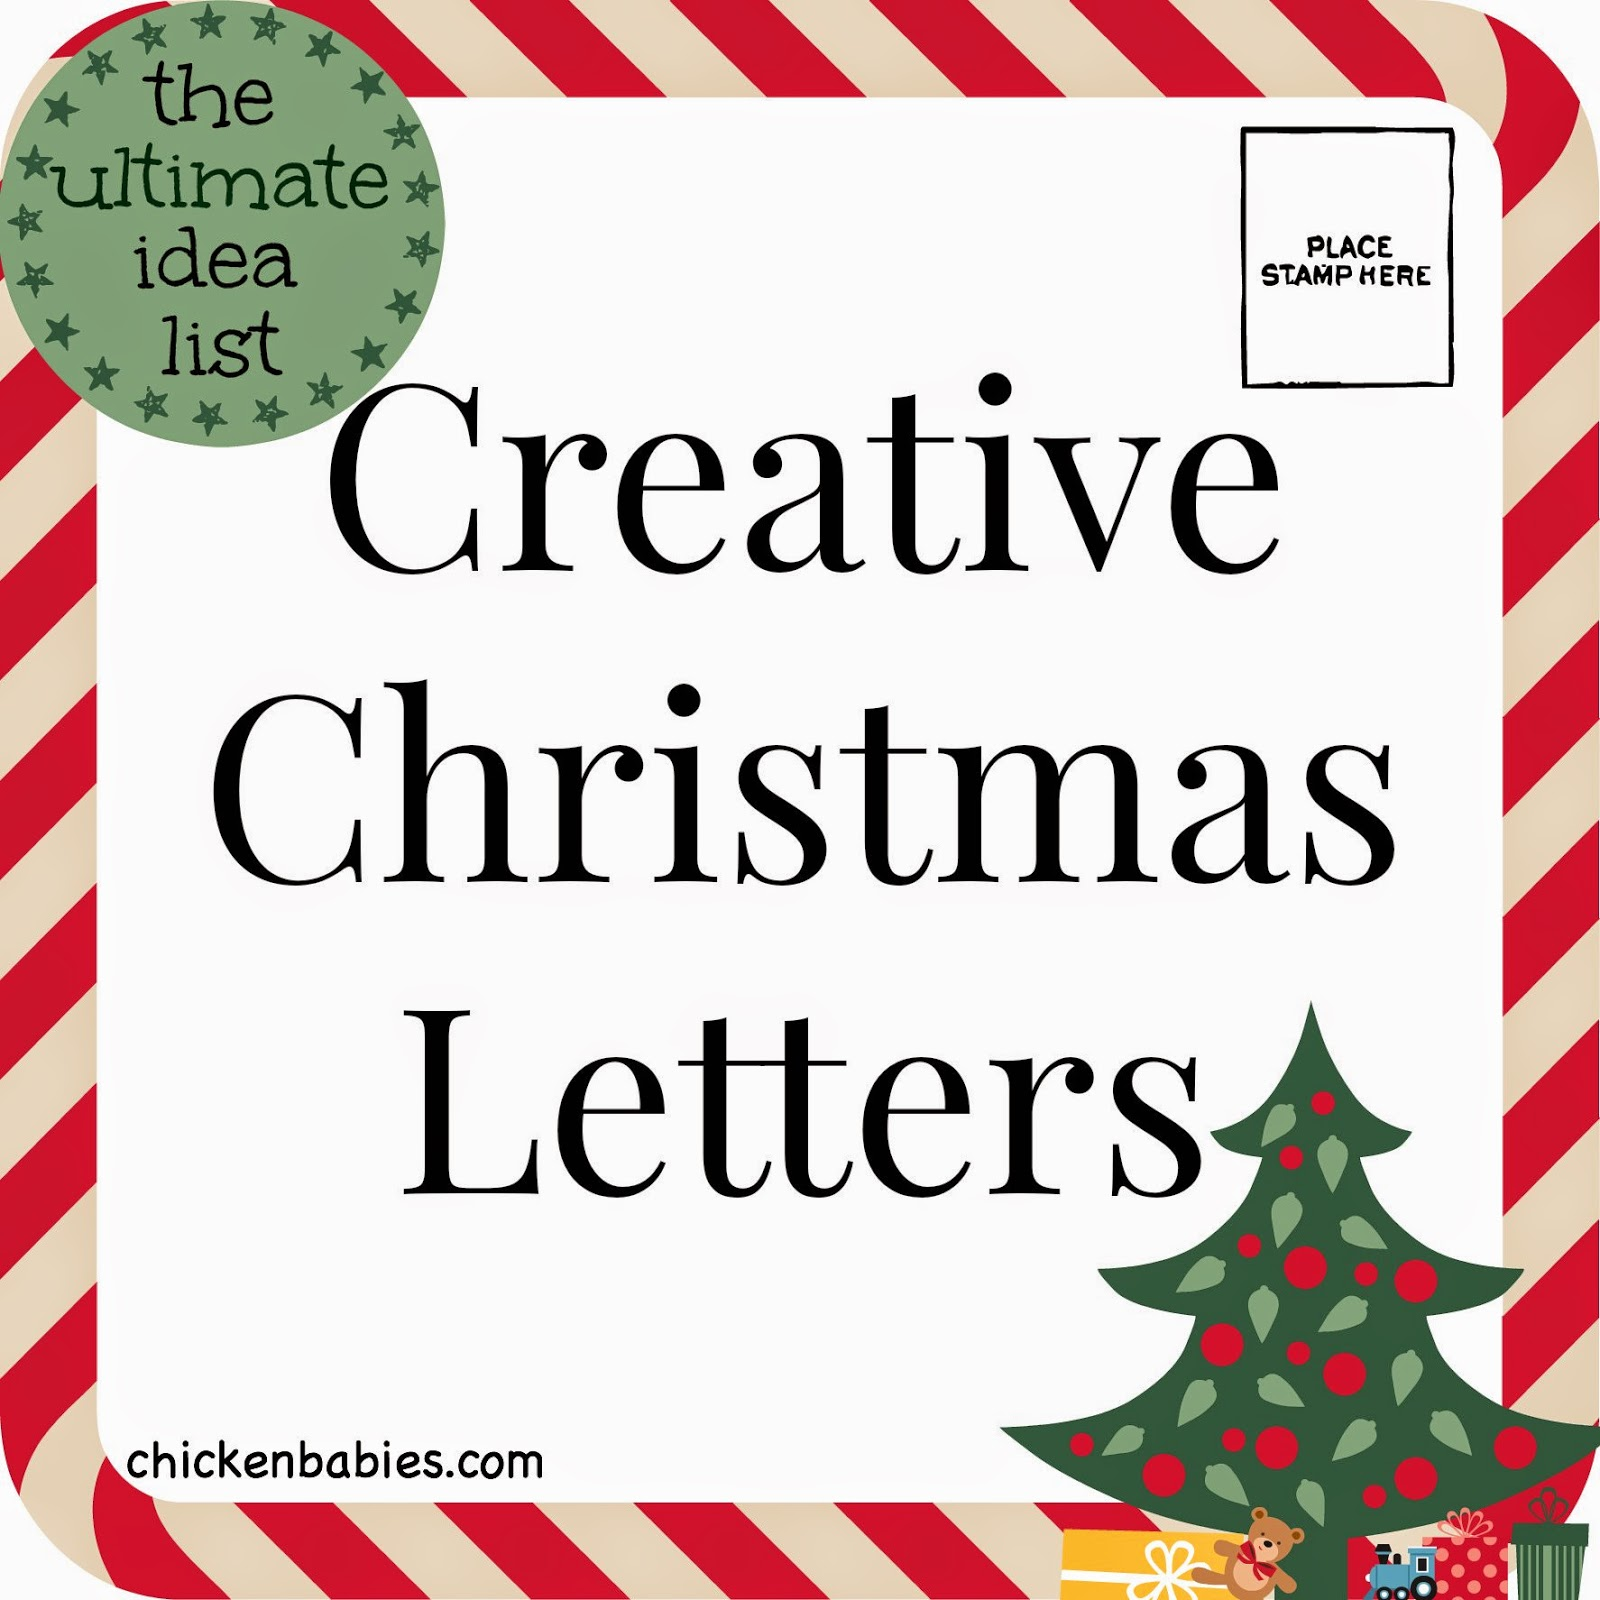 chicken babies: Creative Christmas Cards - Quiz